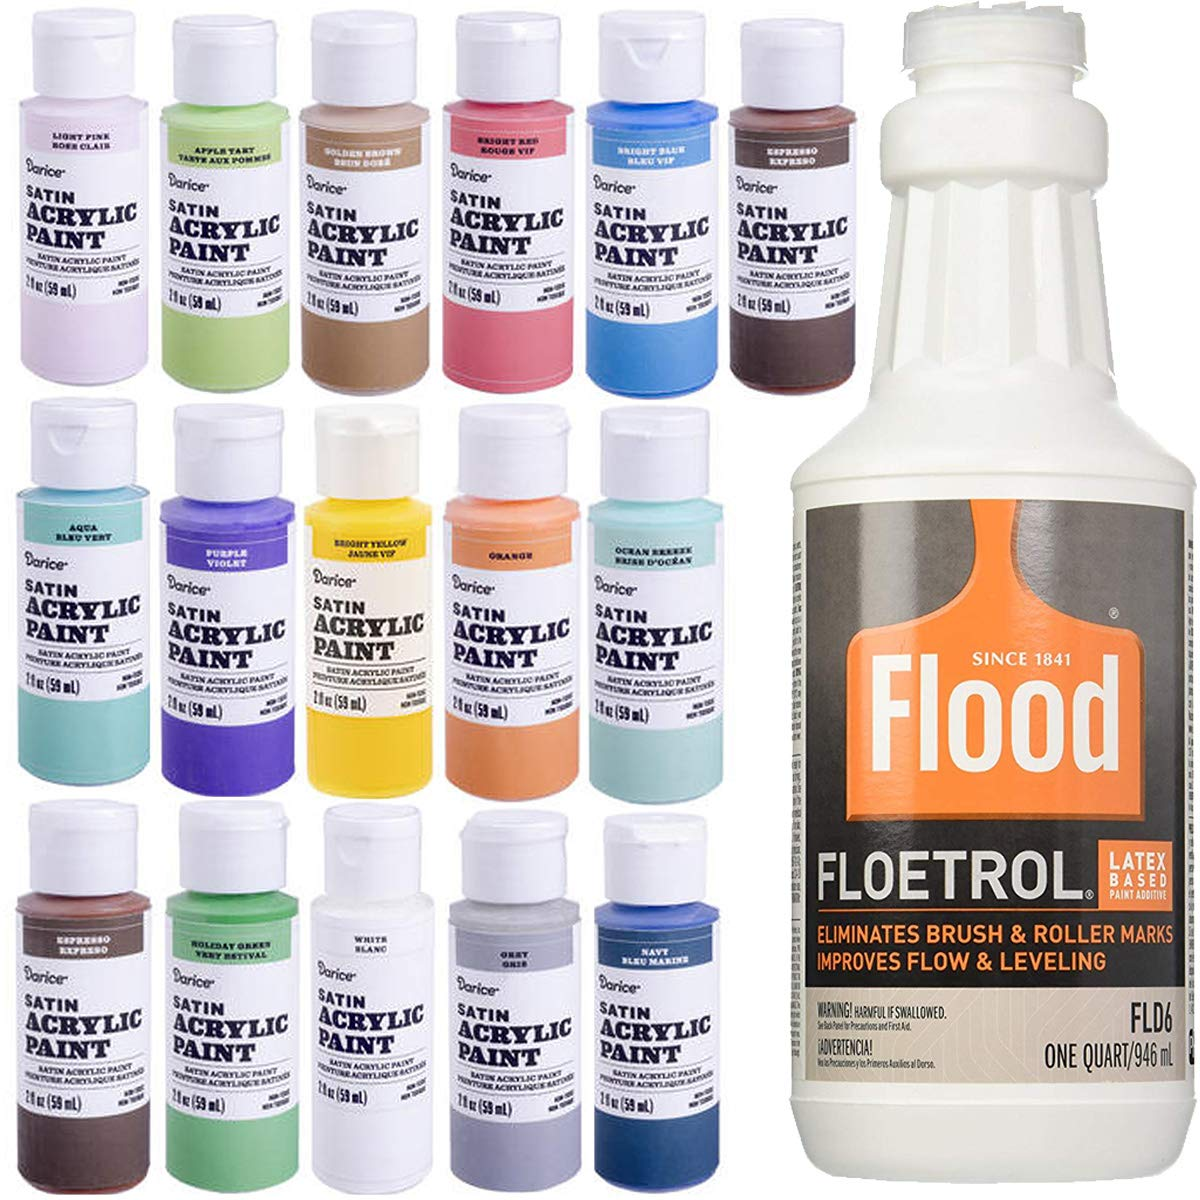 1 Quart Flood Floetrol Additive, 16 2-Ounce Acrylic Paints, 20x 6-inch Pixiss Wood Mixing Sticks PPG Darice